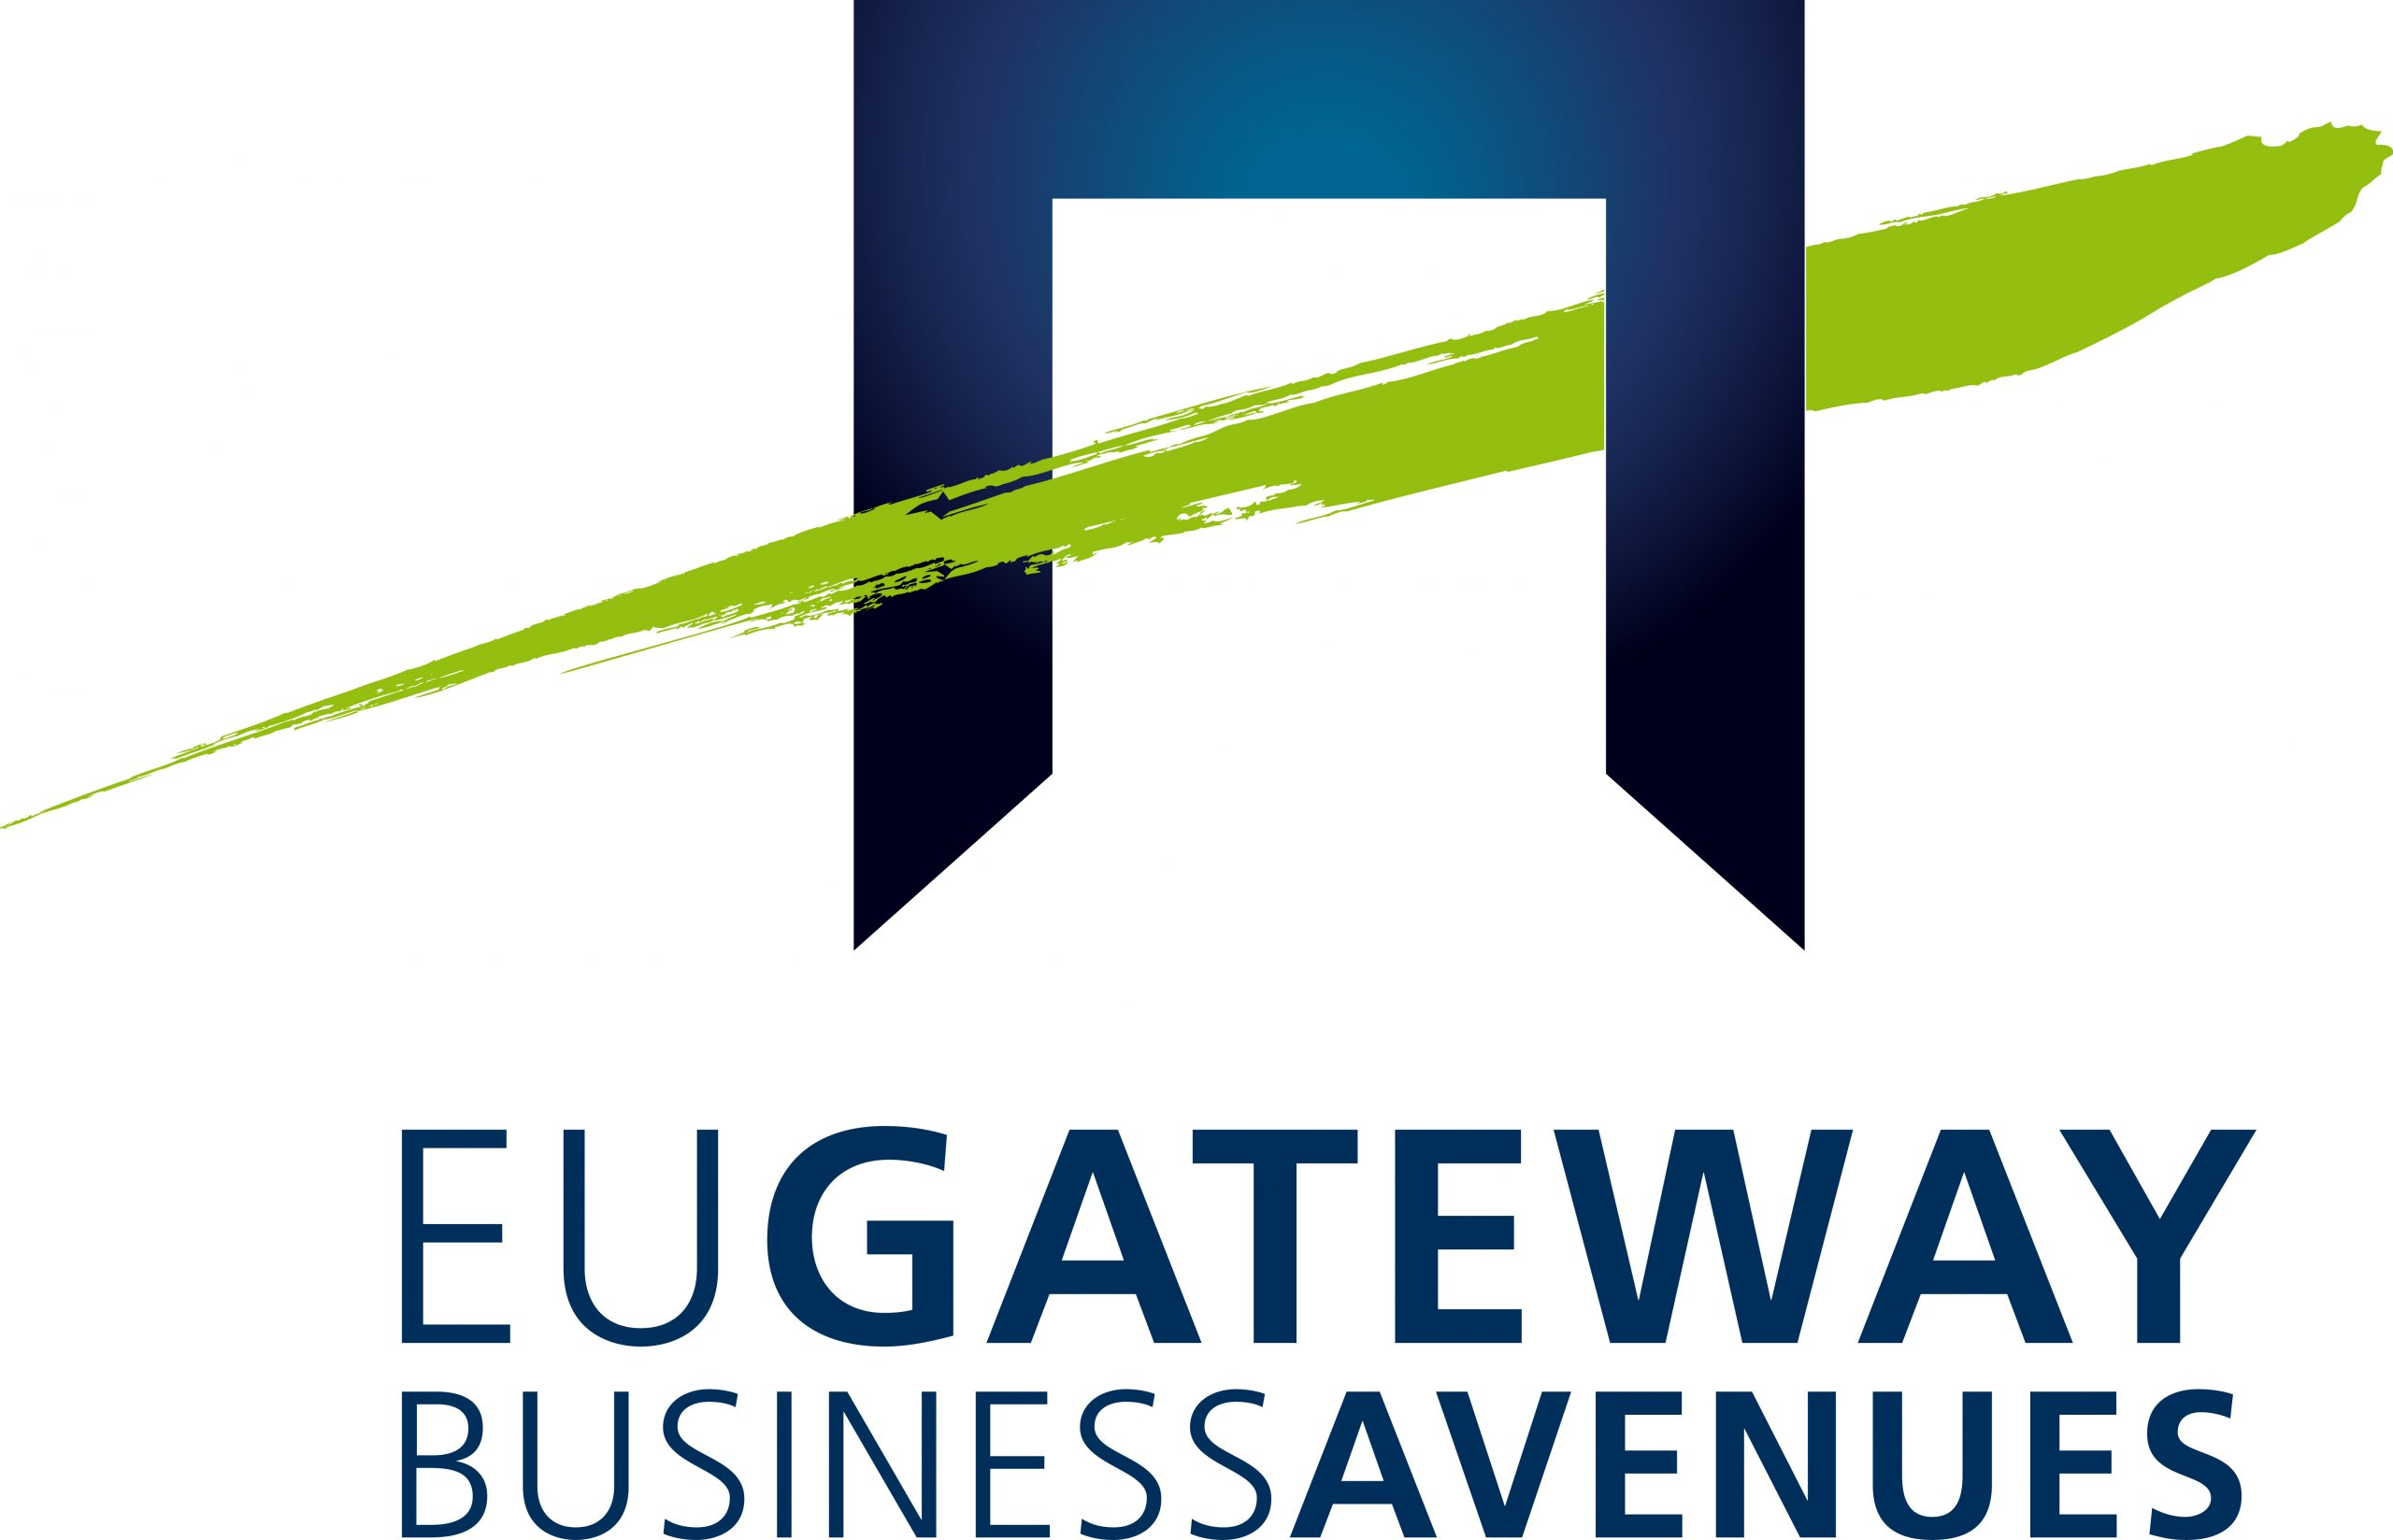 eu gateway business avenues